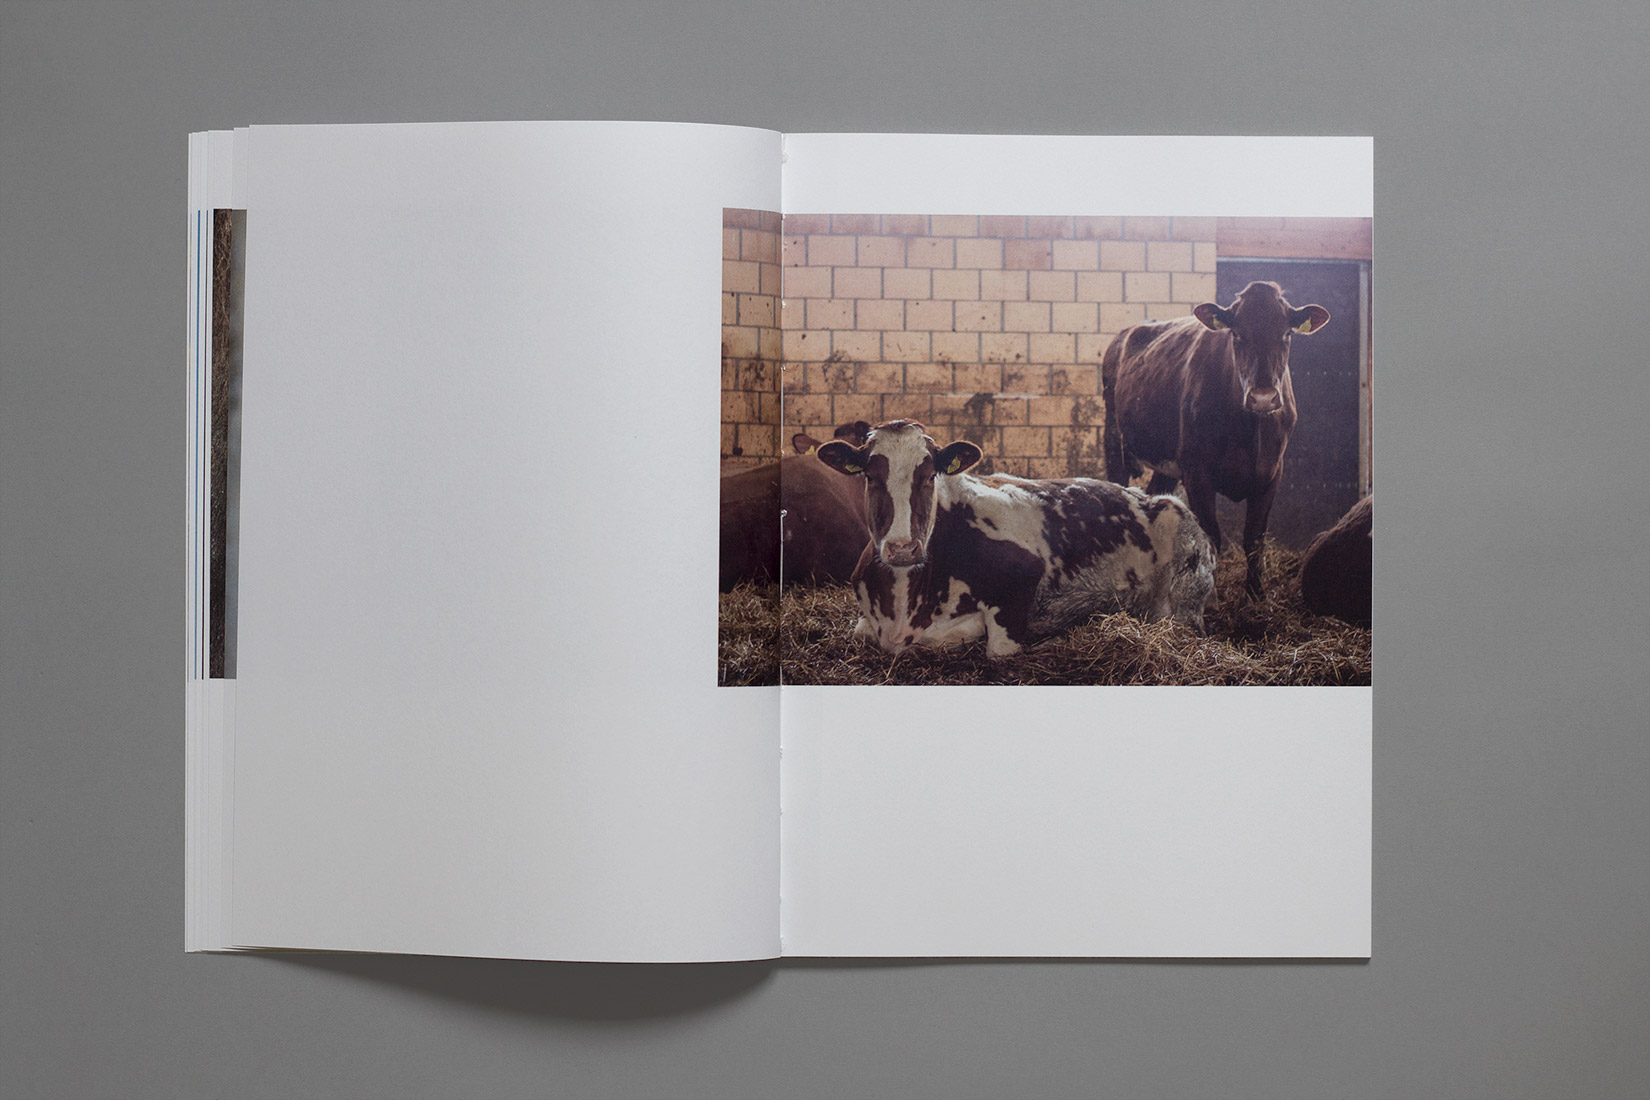 diploma, graphic design, book, La Chaux-des-Breuleux, cows, photography, barn